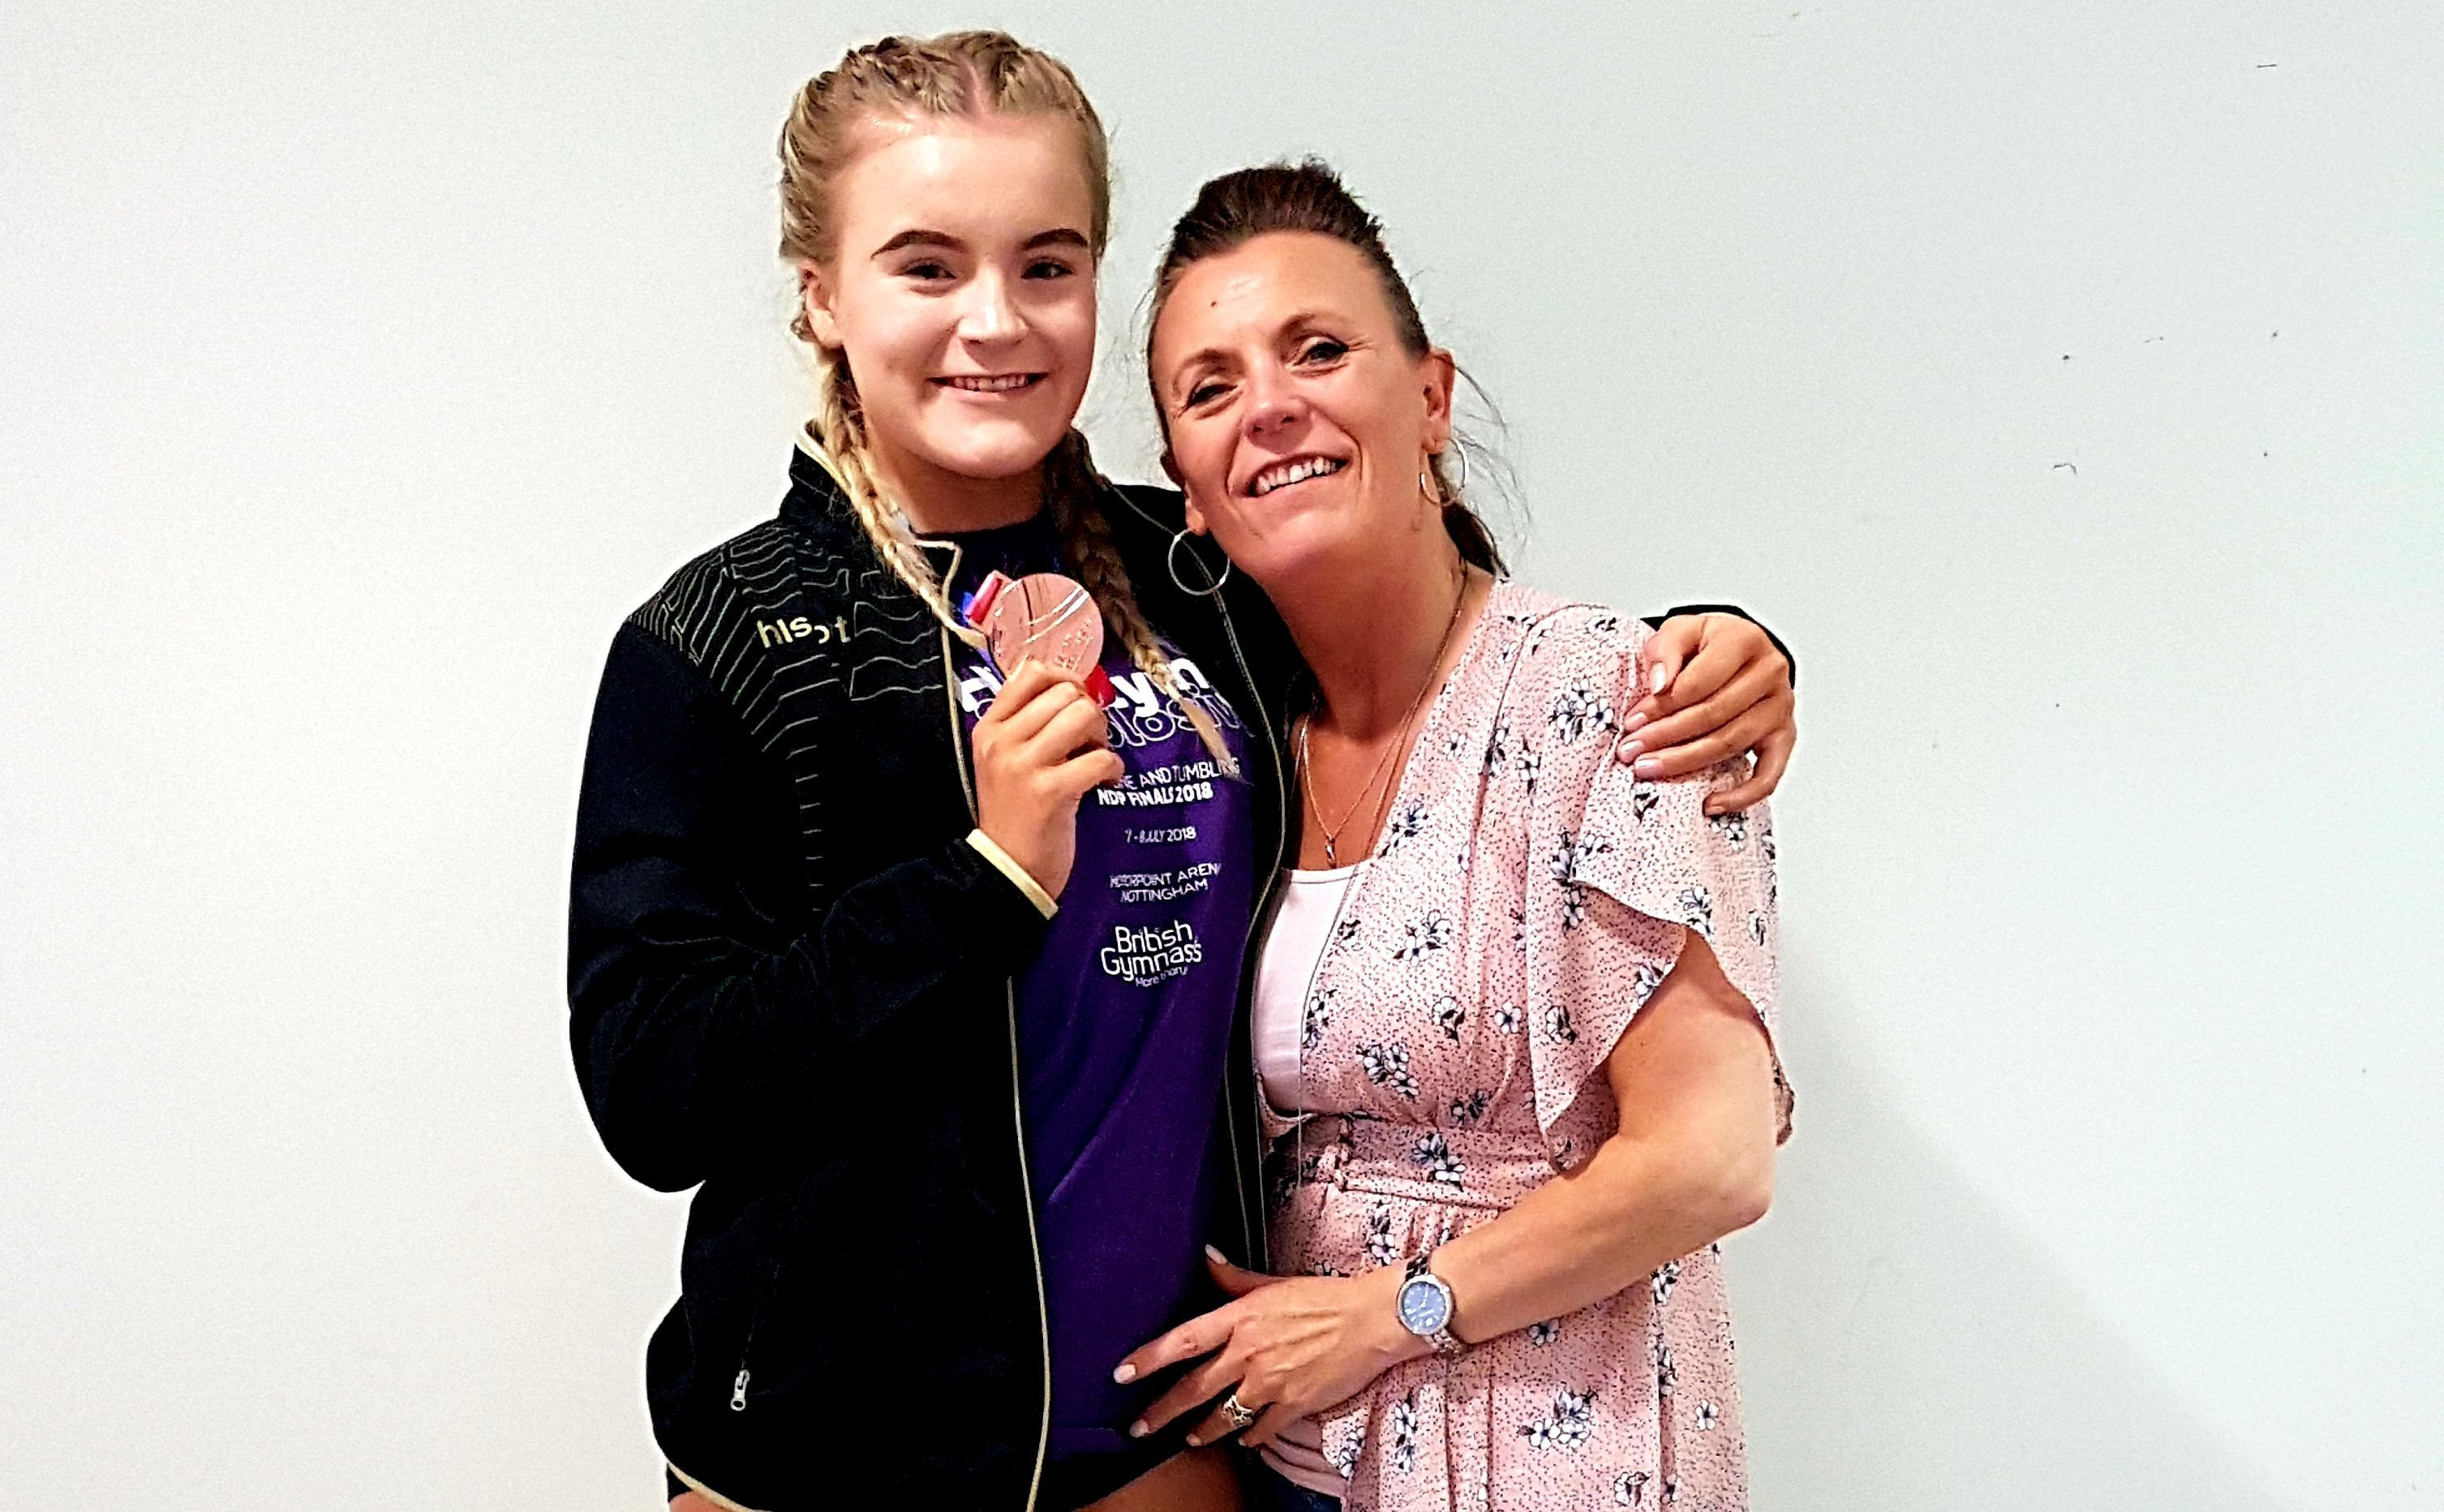 Tegan Gaffrey showing off her medal, accompanied by her mum, Cordelia.